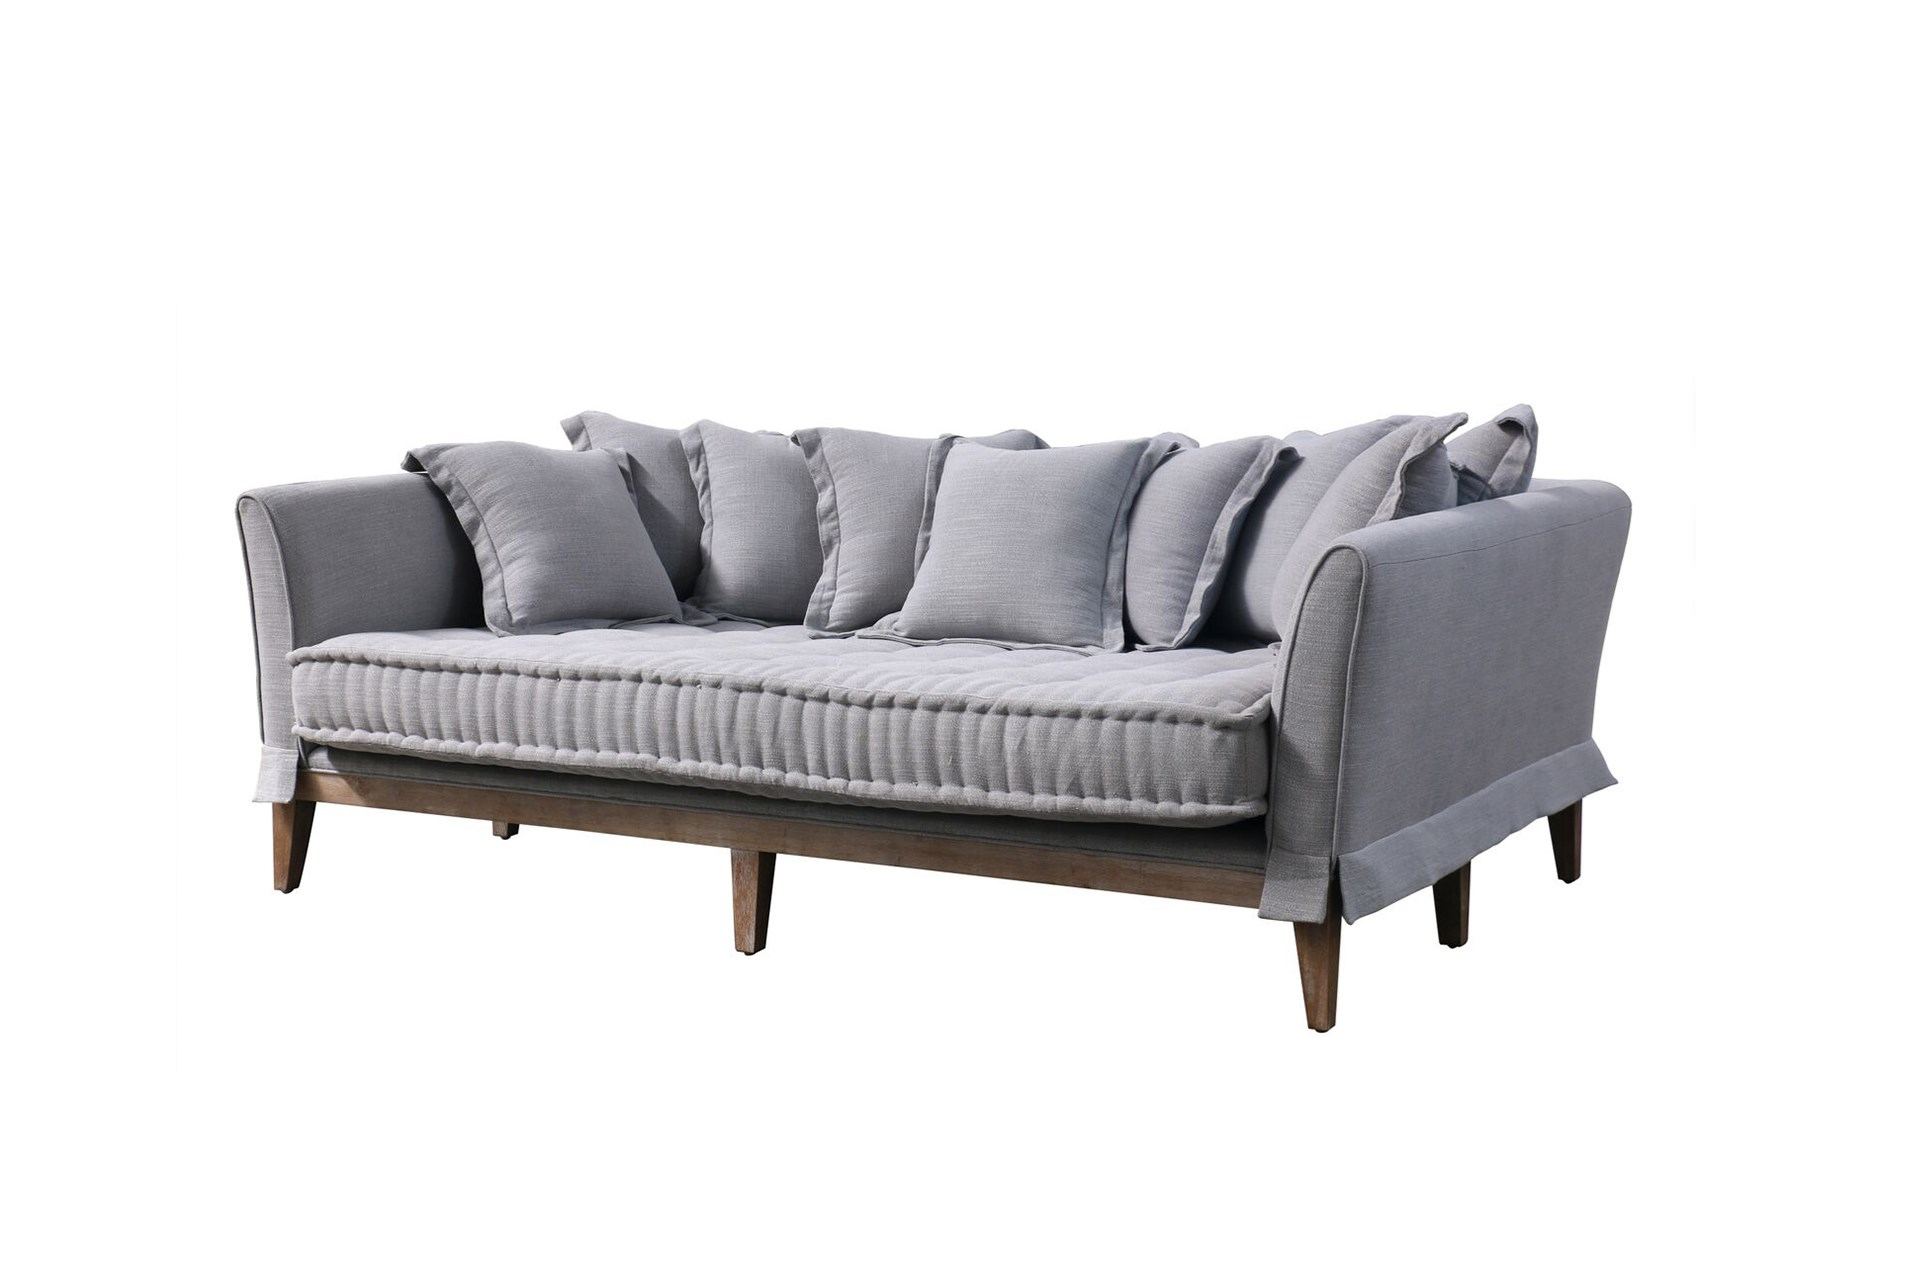 daybed sofa. Pewter Linen Daybed Sofa - 360 Elements S